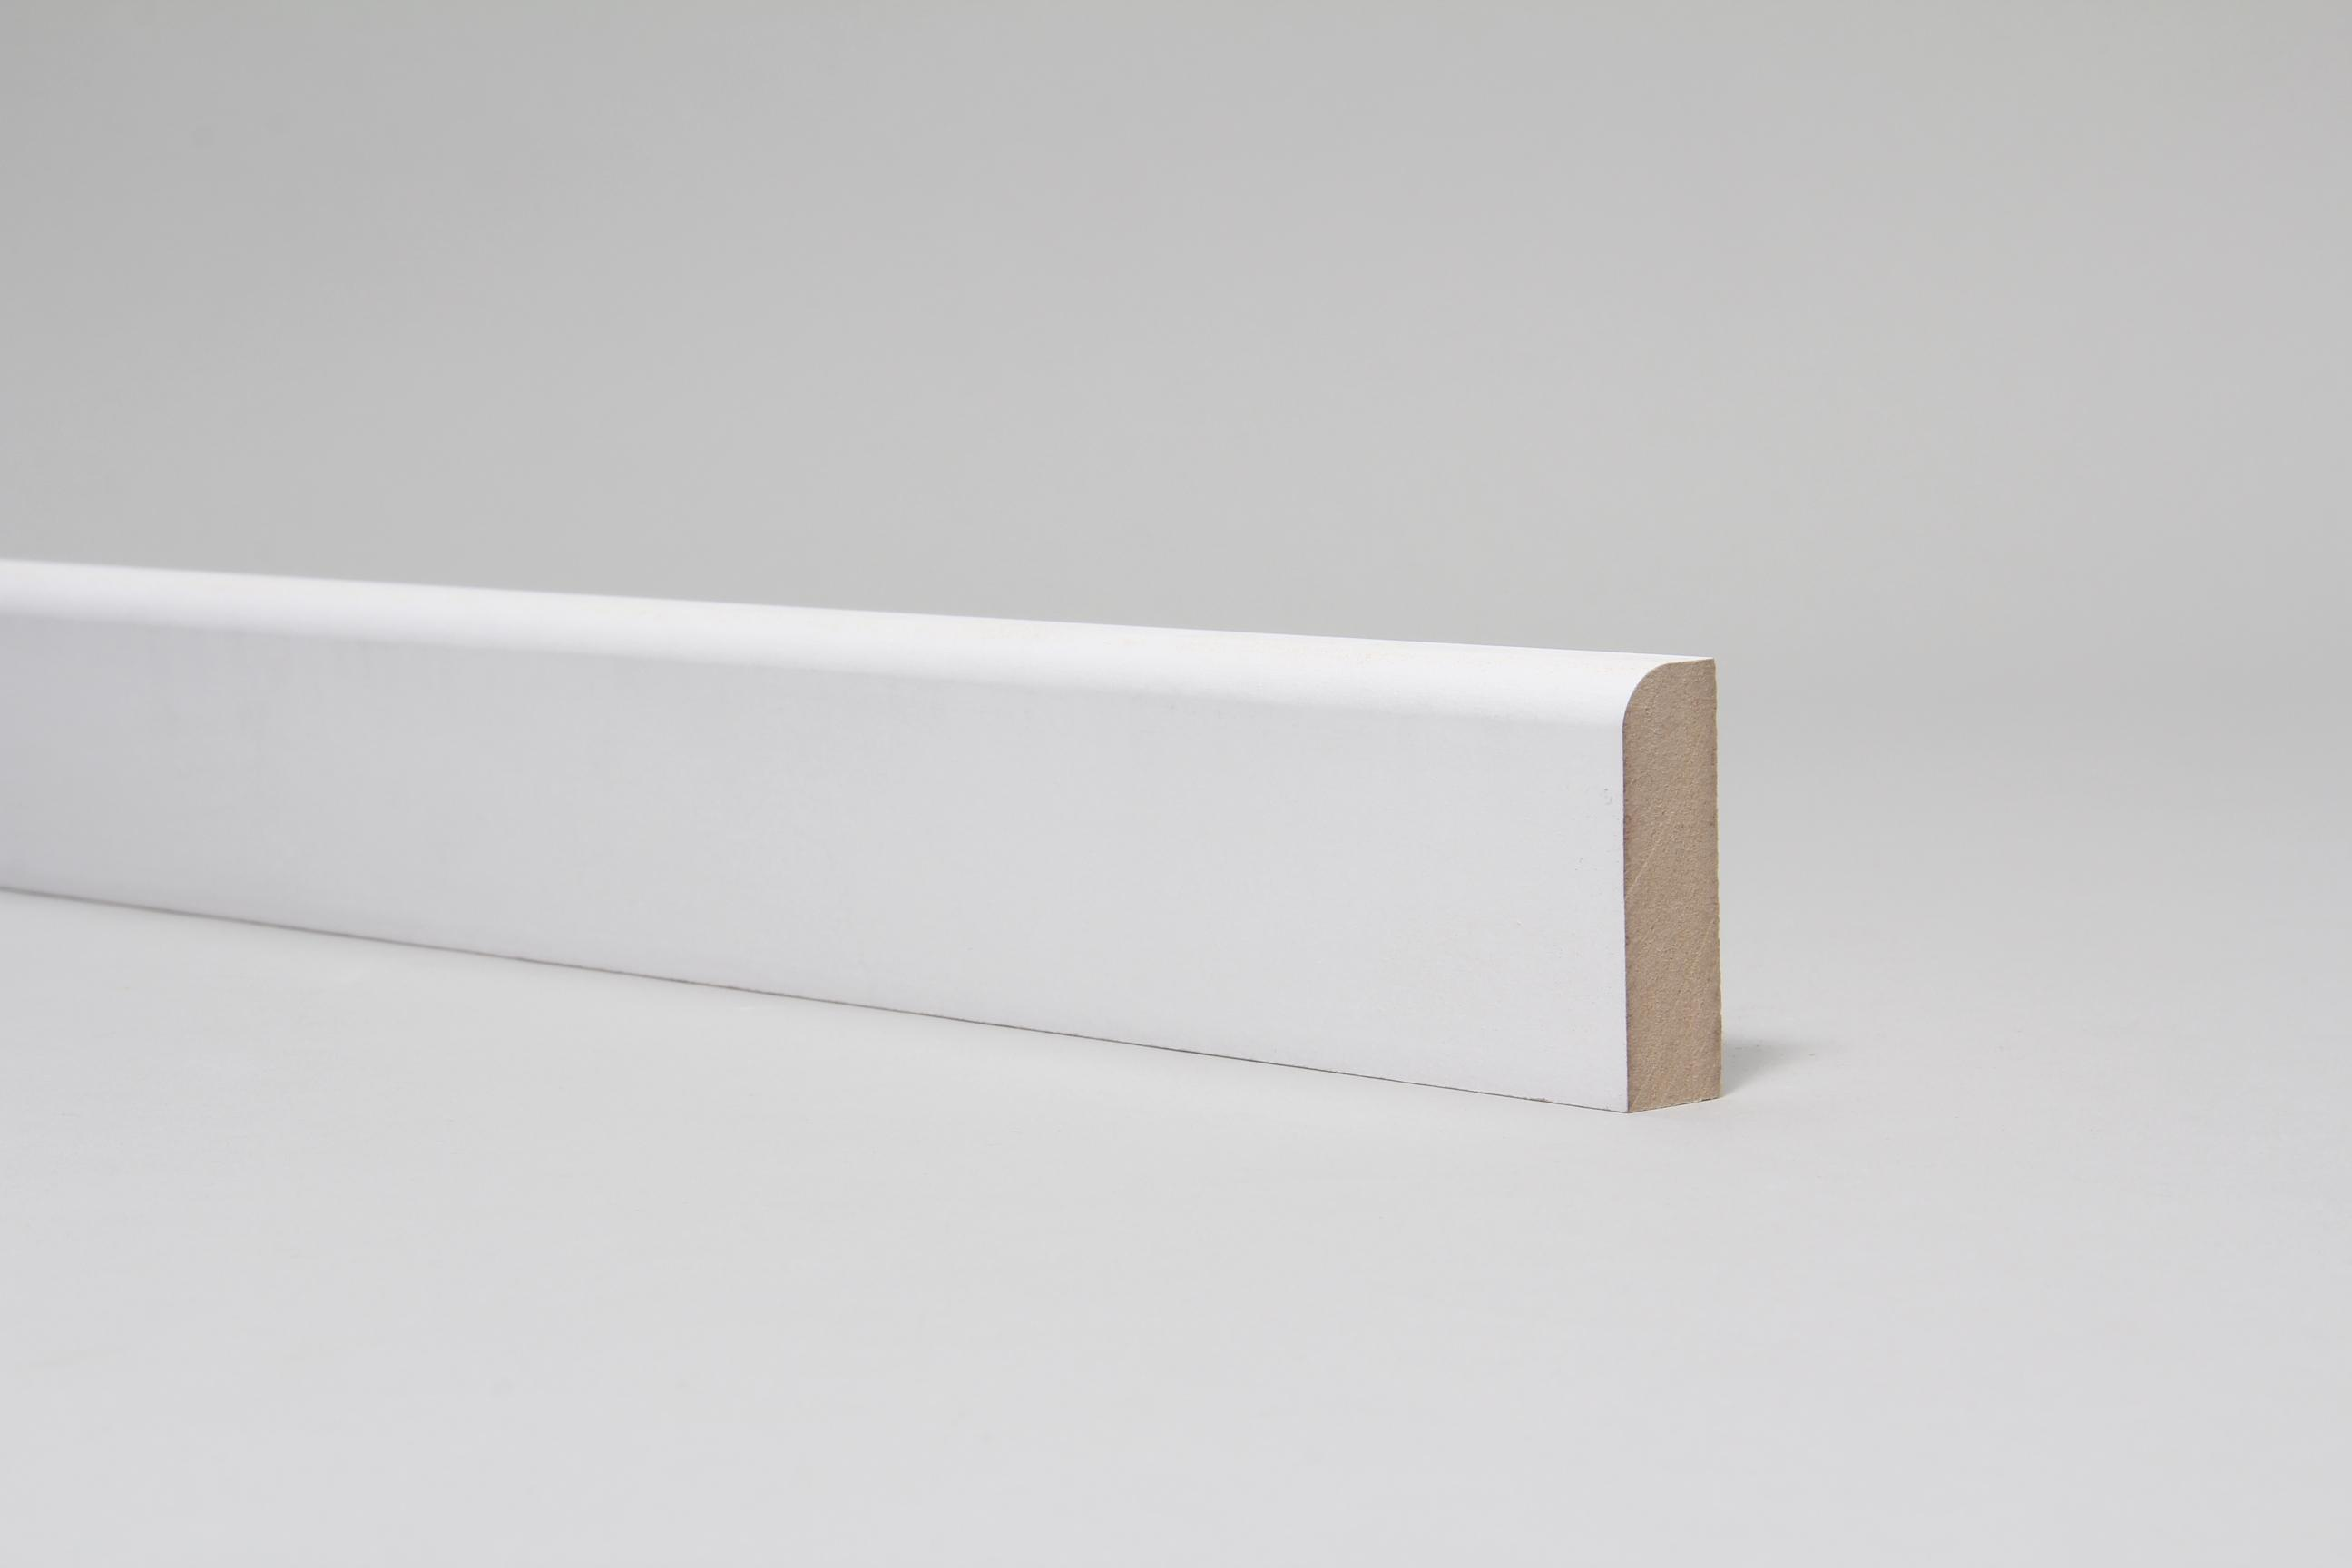 Rounded One Edge 18mm x 57mm Architrave Set Primed Set